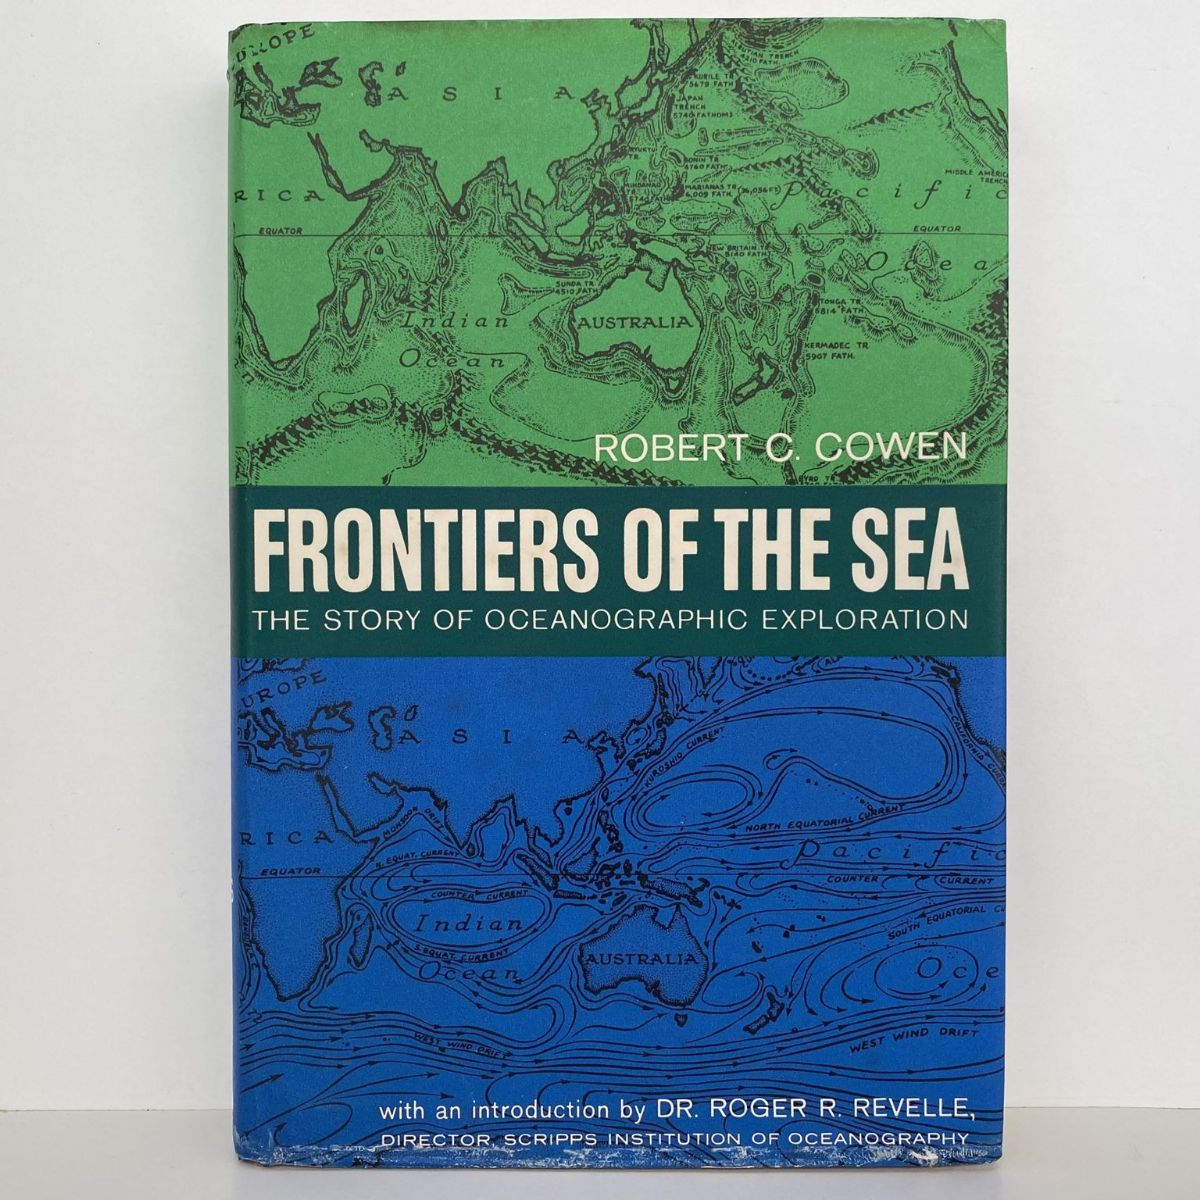 FRONTIERS OF THE SEA: The Story of the Oceanographic Exploration